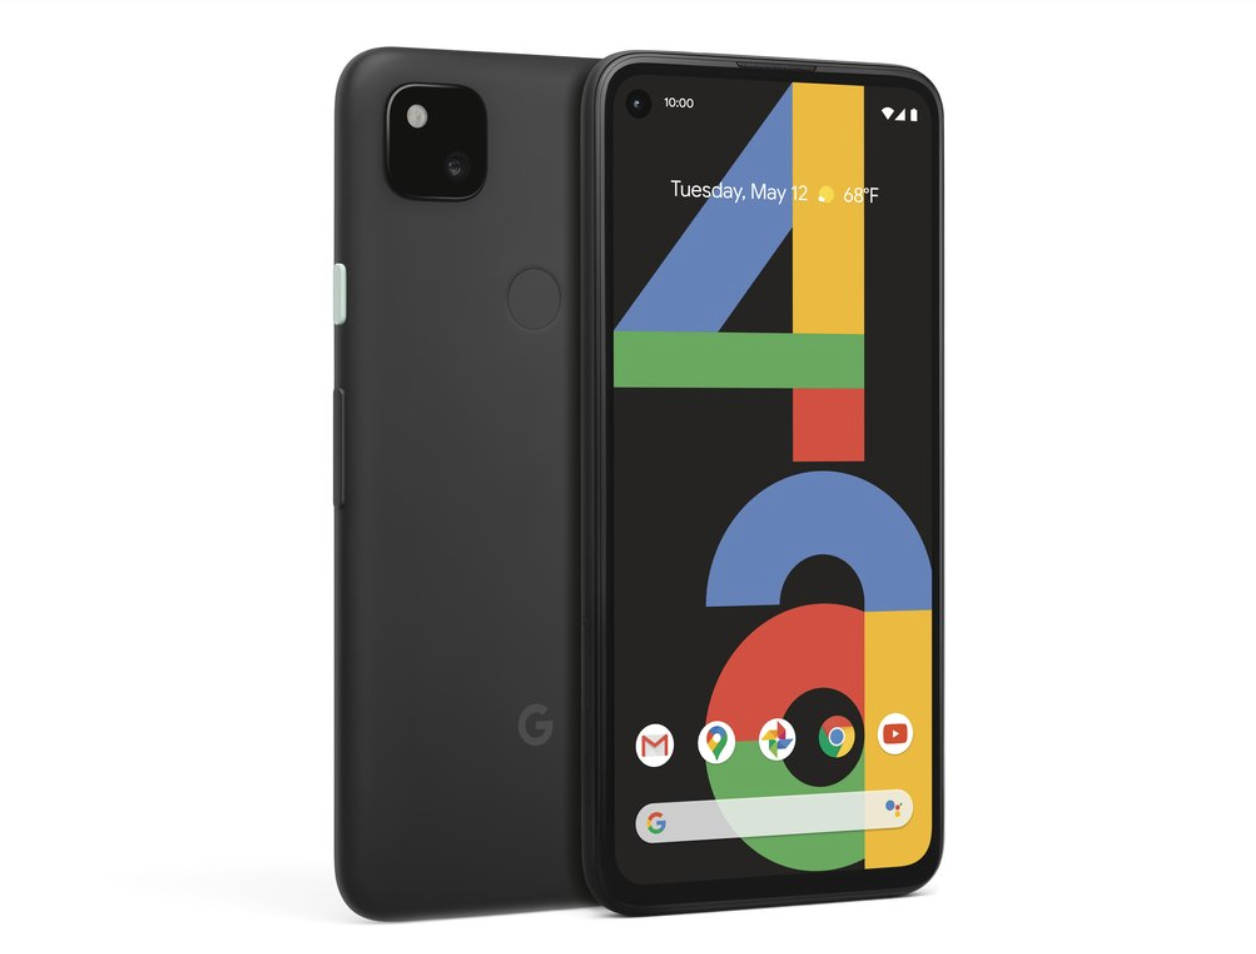 Google Pixel 4a with Snapdragon 730G processor released;  Will be available in October - Latest news